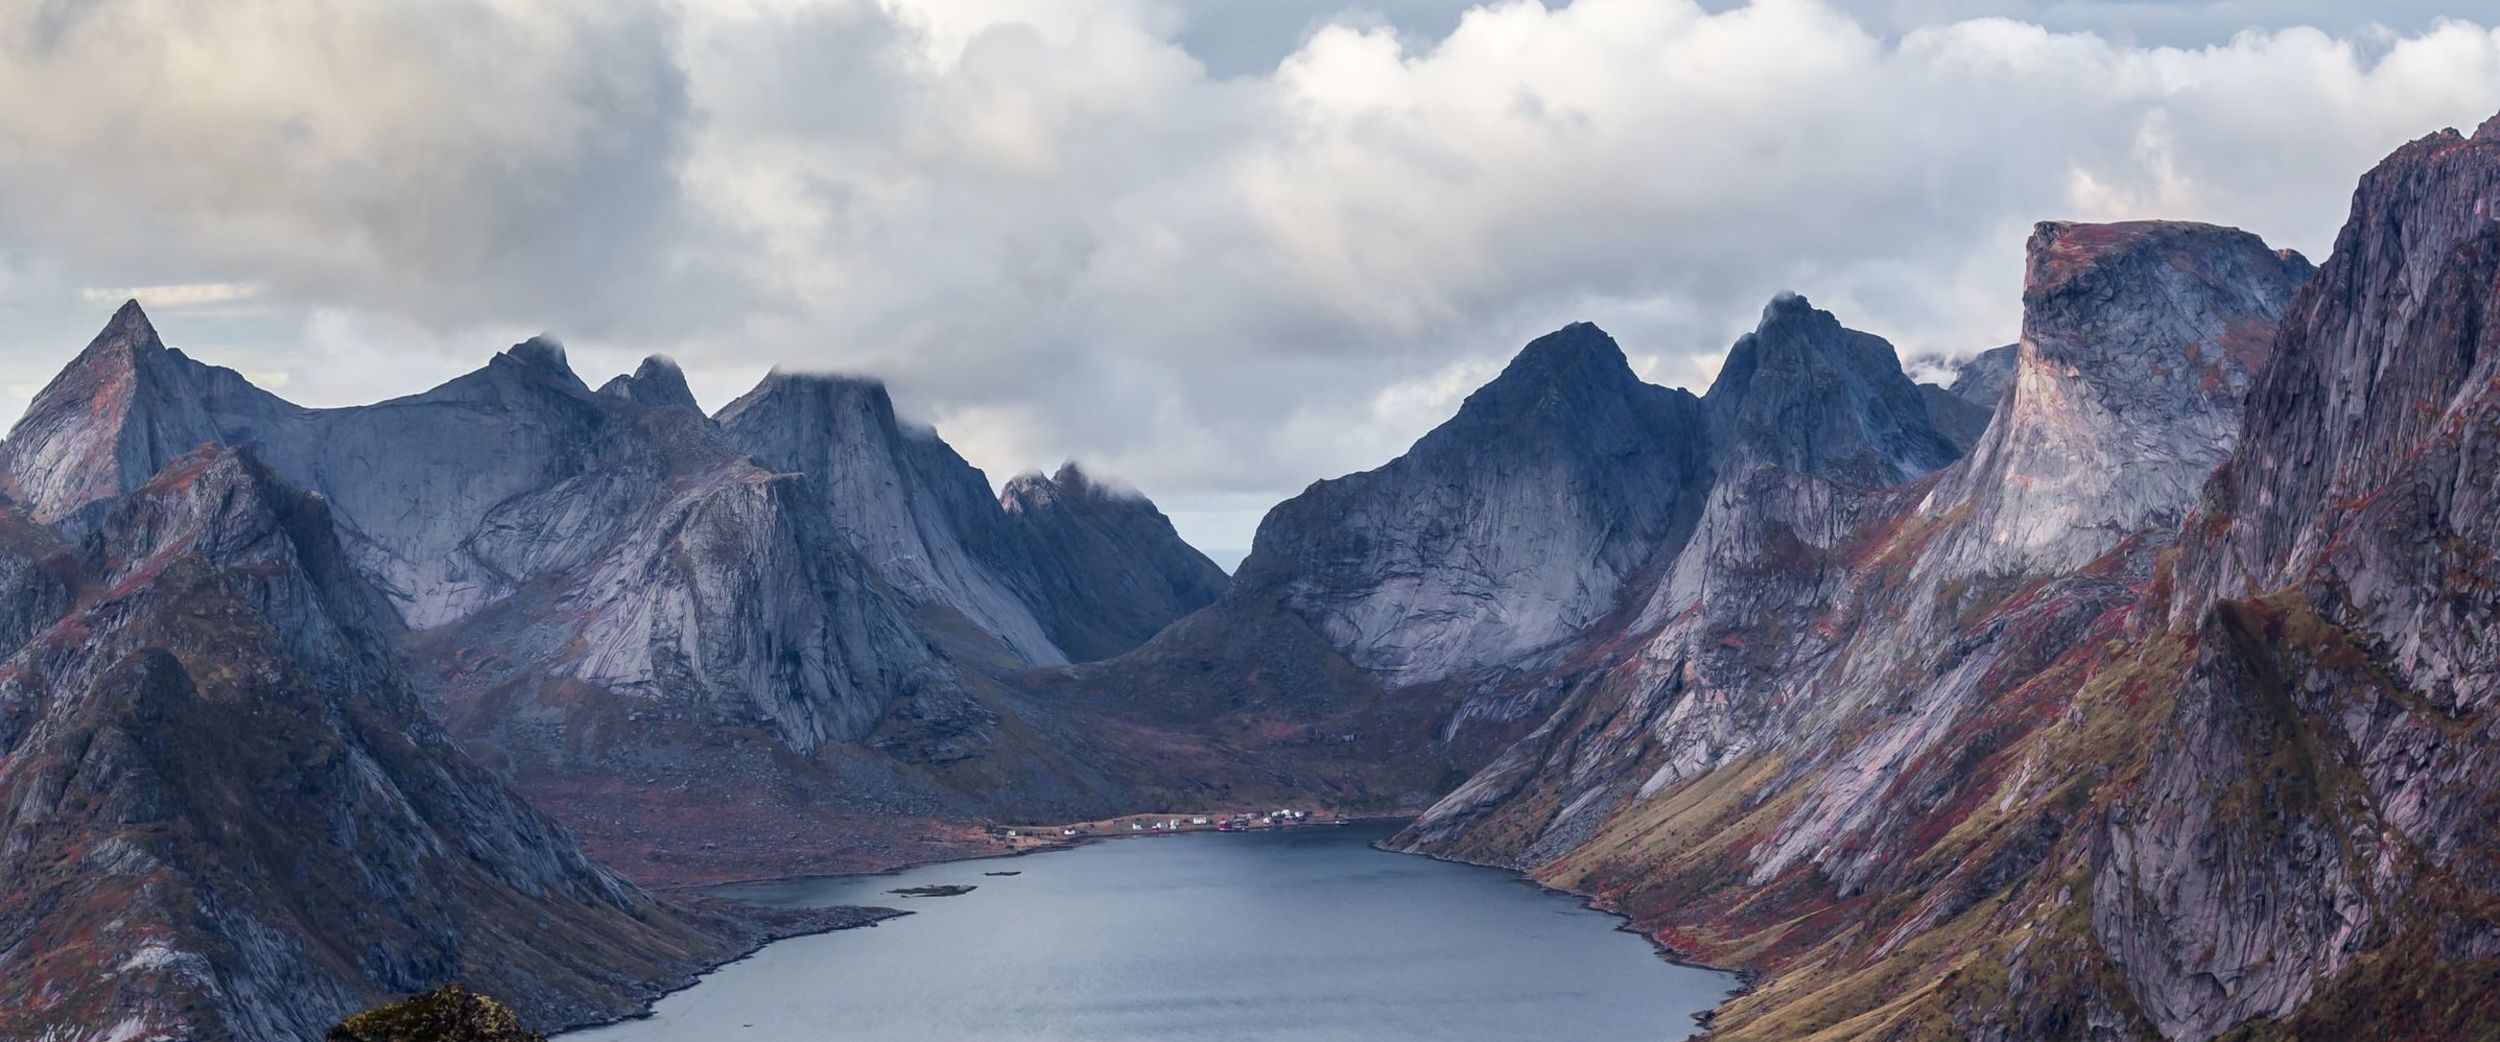 Reine in Lofoten, mountains around a fjord. Photo: Ferdinand Stohr, unsplash